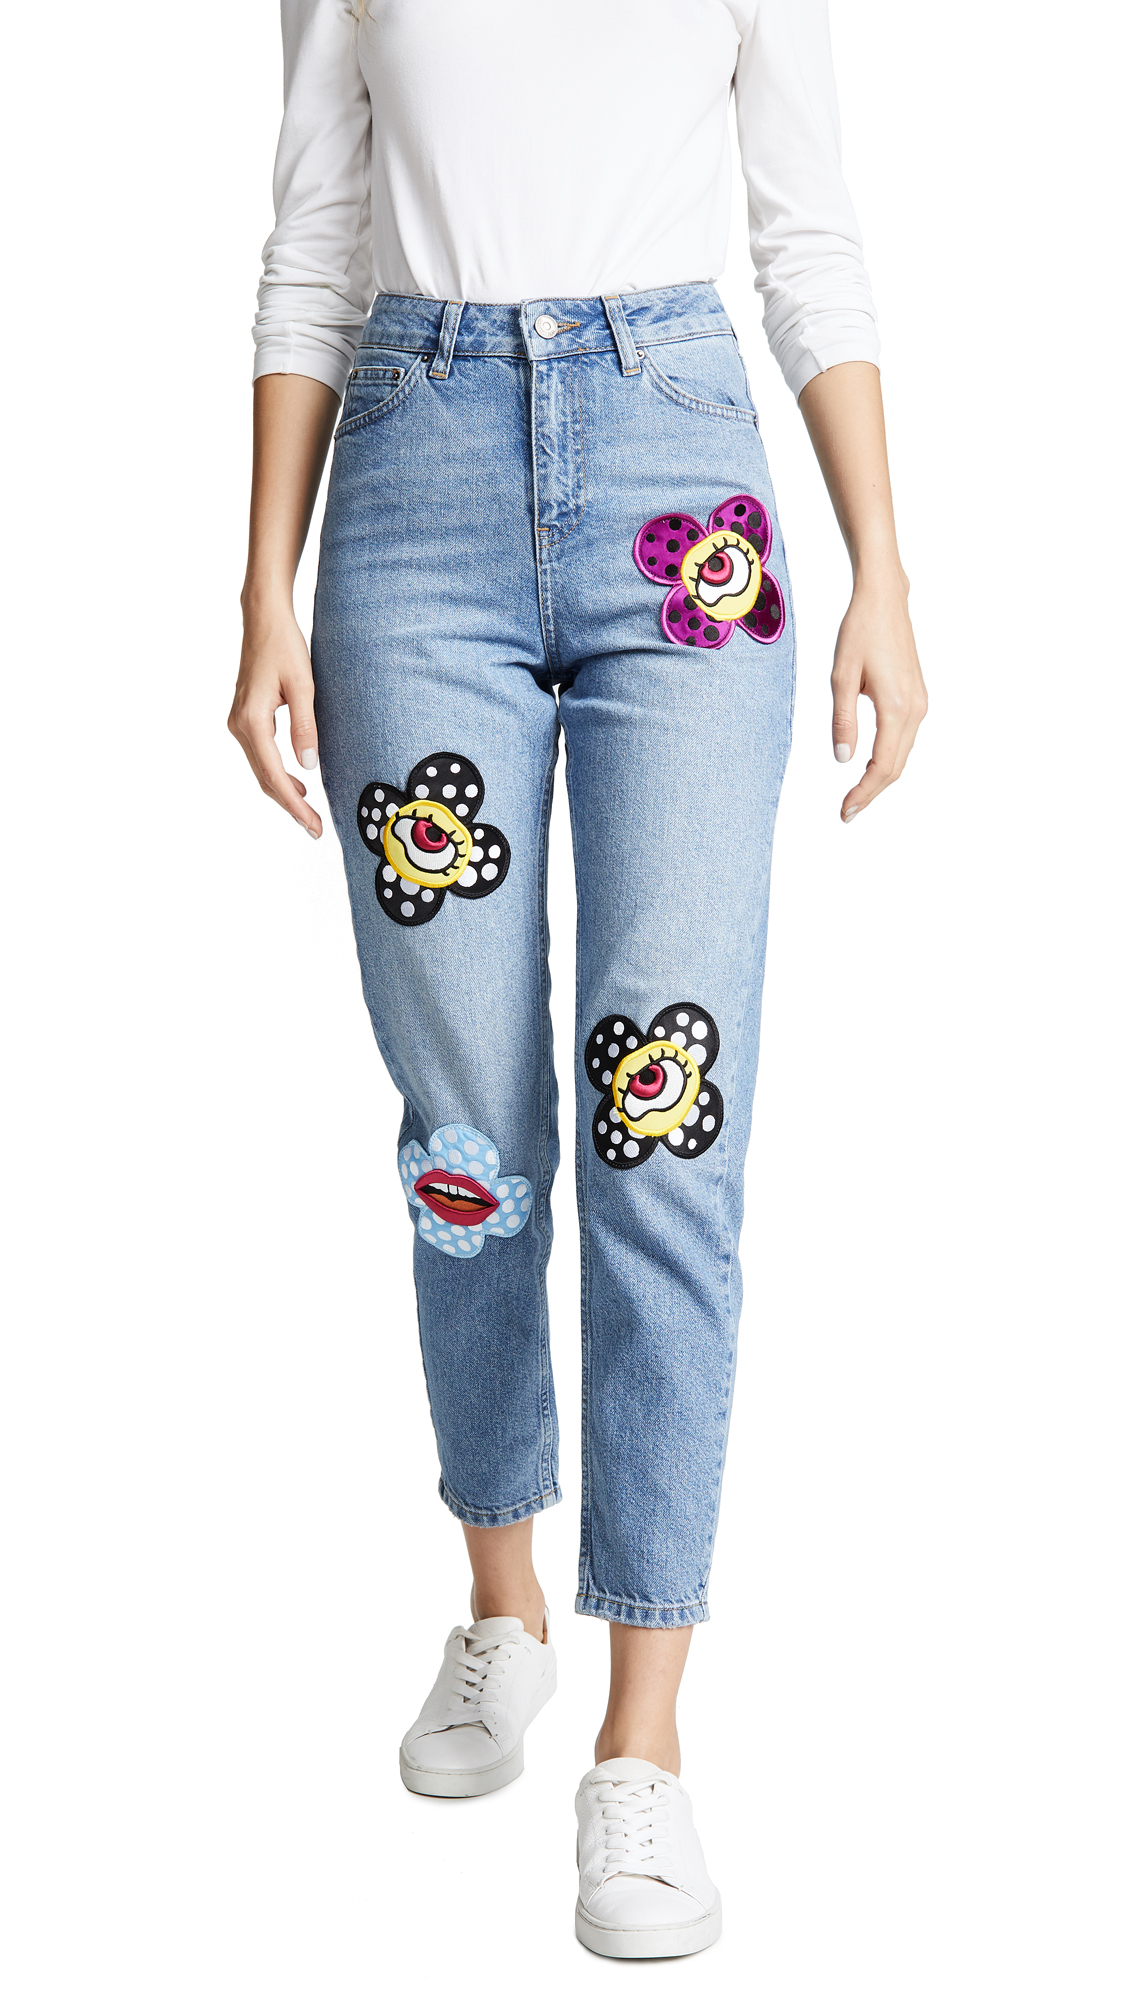 KATYA DOBRYAKOVA Flower Eyes Jeans in Light Blue